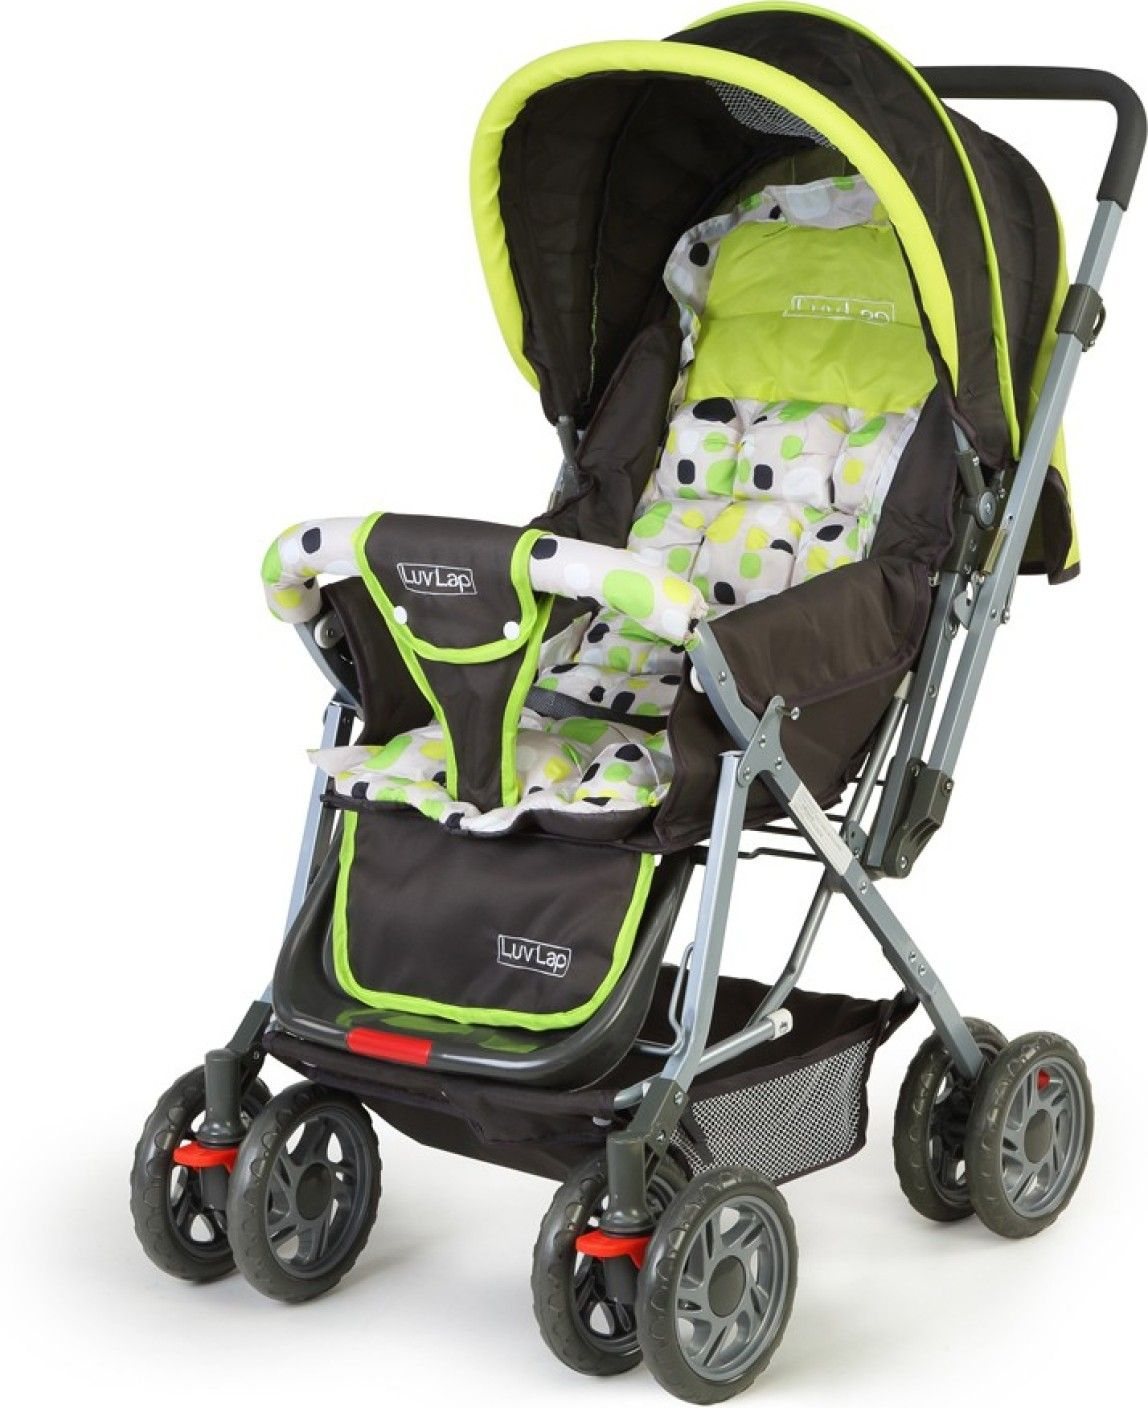 LuvLap Sunshine Baby Stroller Buy Stroller for 3 24